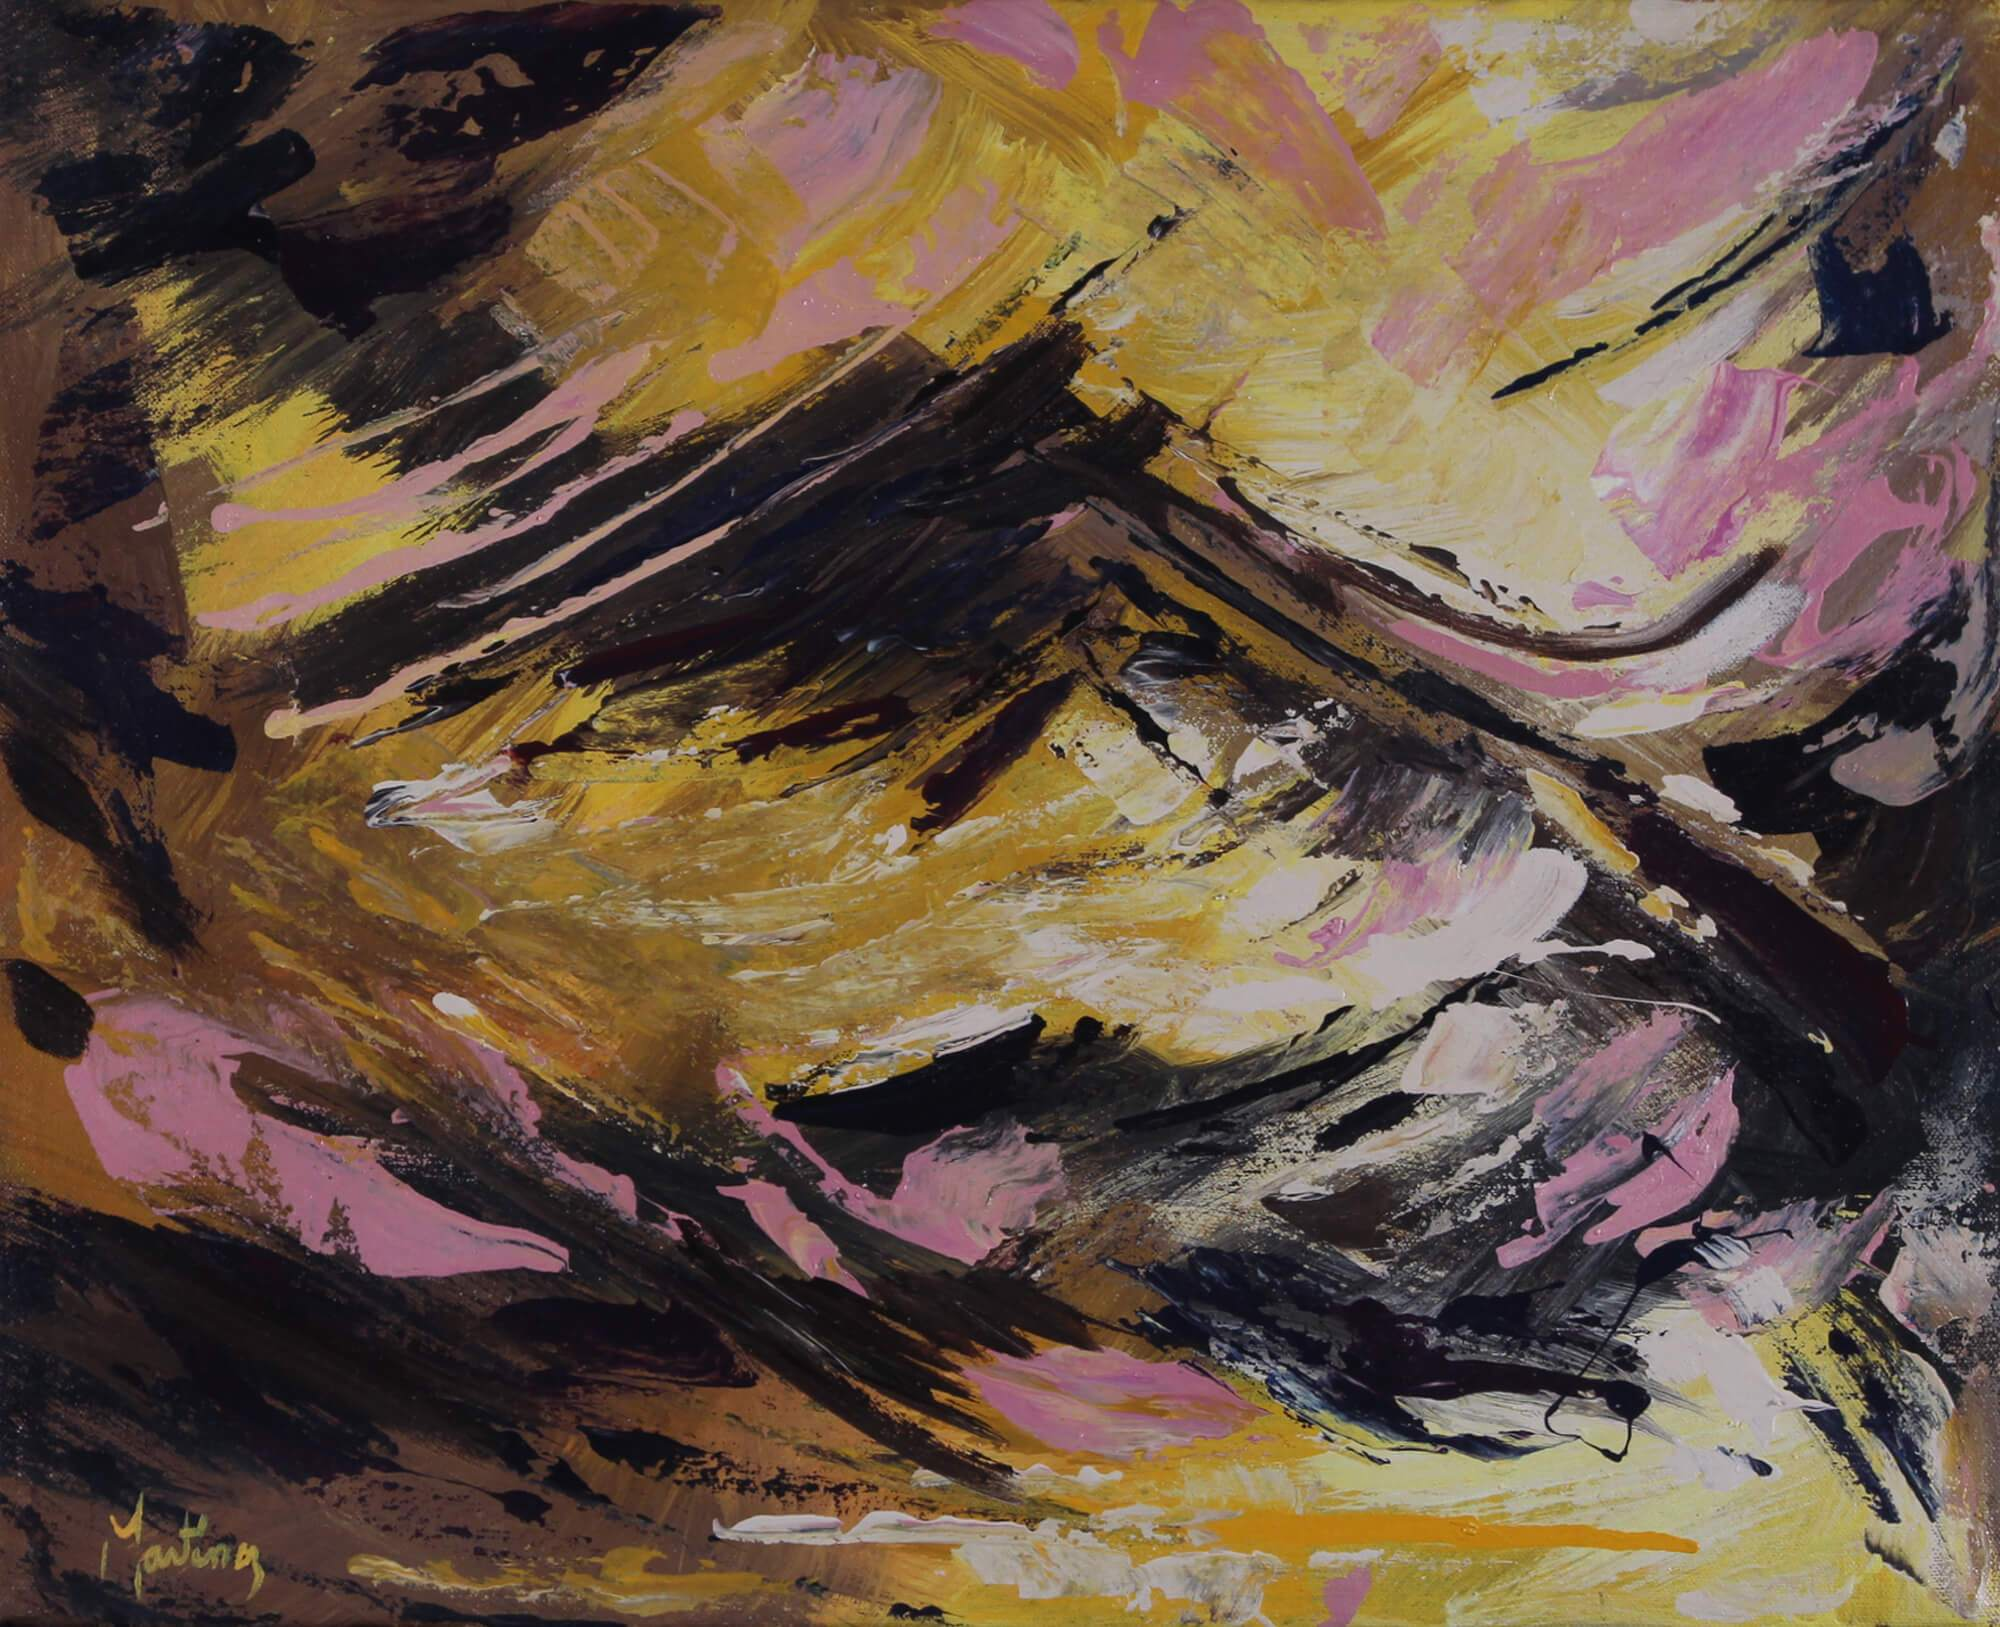 Abstract acrylic painting of a solitary mountain scenery by waves by Joe Martínez.